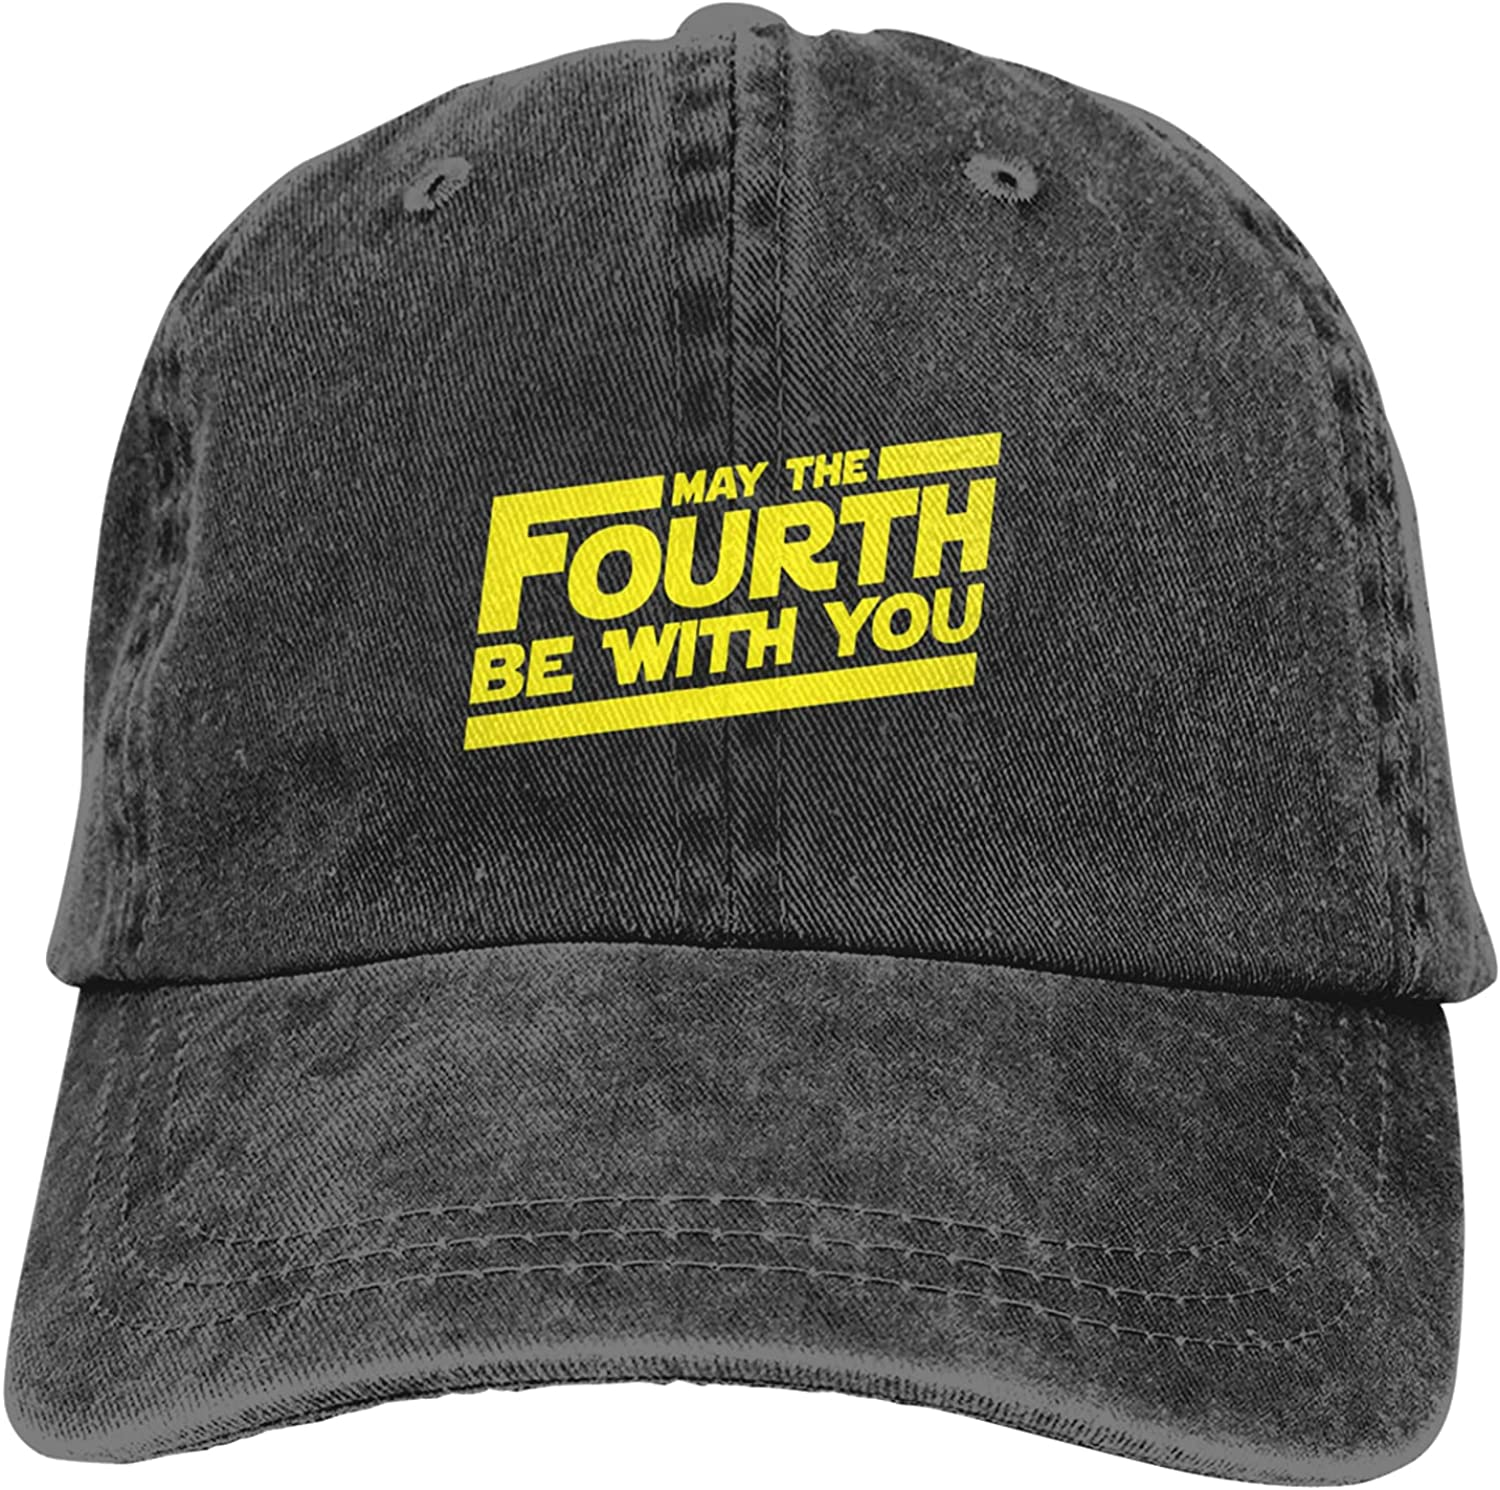 DOPKEEP Unisex Baseball Cap Adjustable May The 4th Be with U You Trucker Hats Cowboy Hat Camping Black